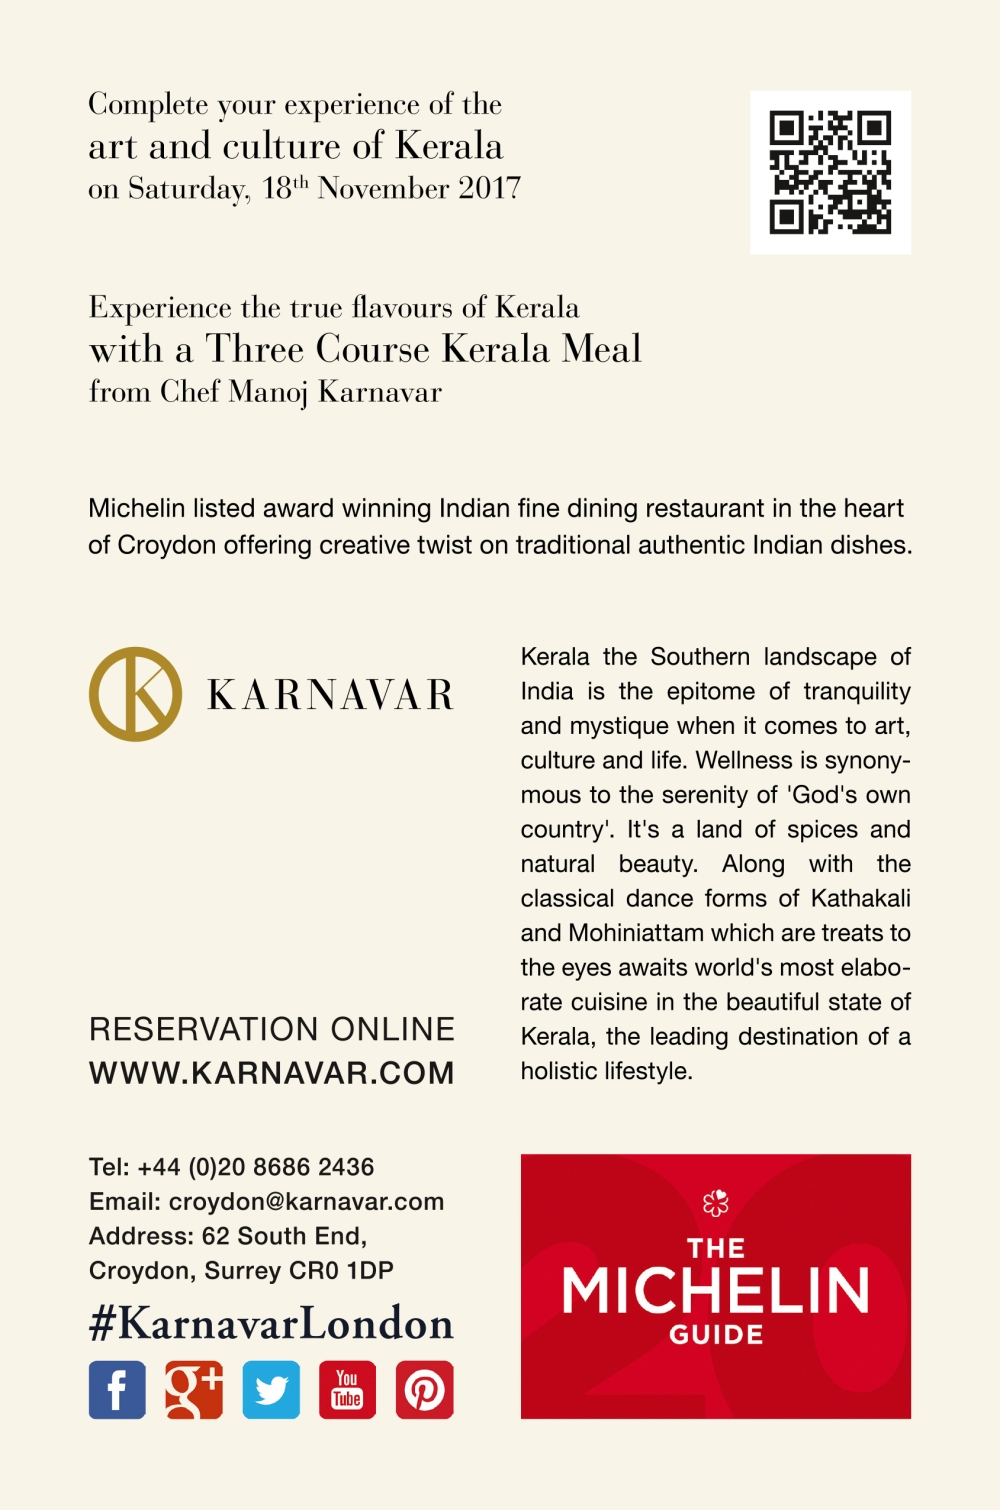 Experience Kerala in South London Offer